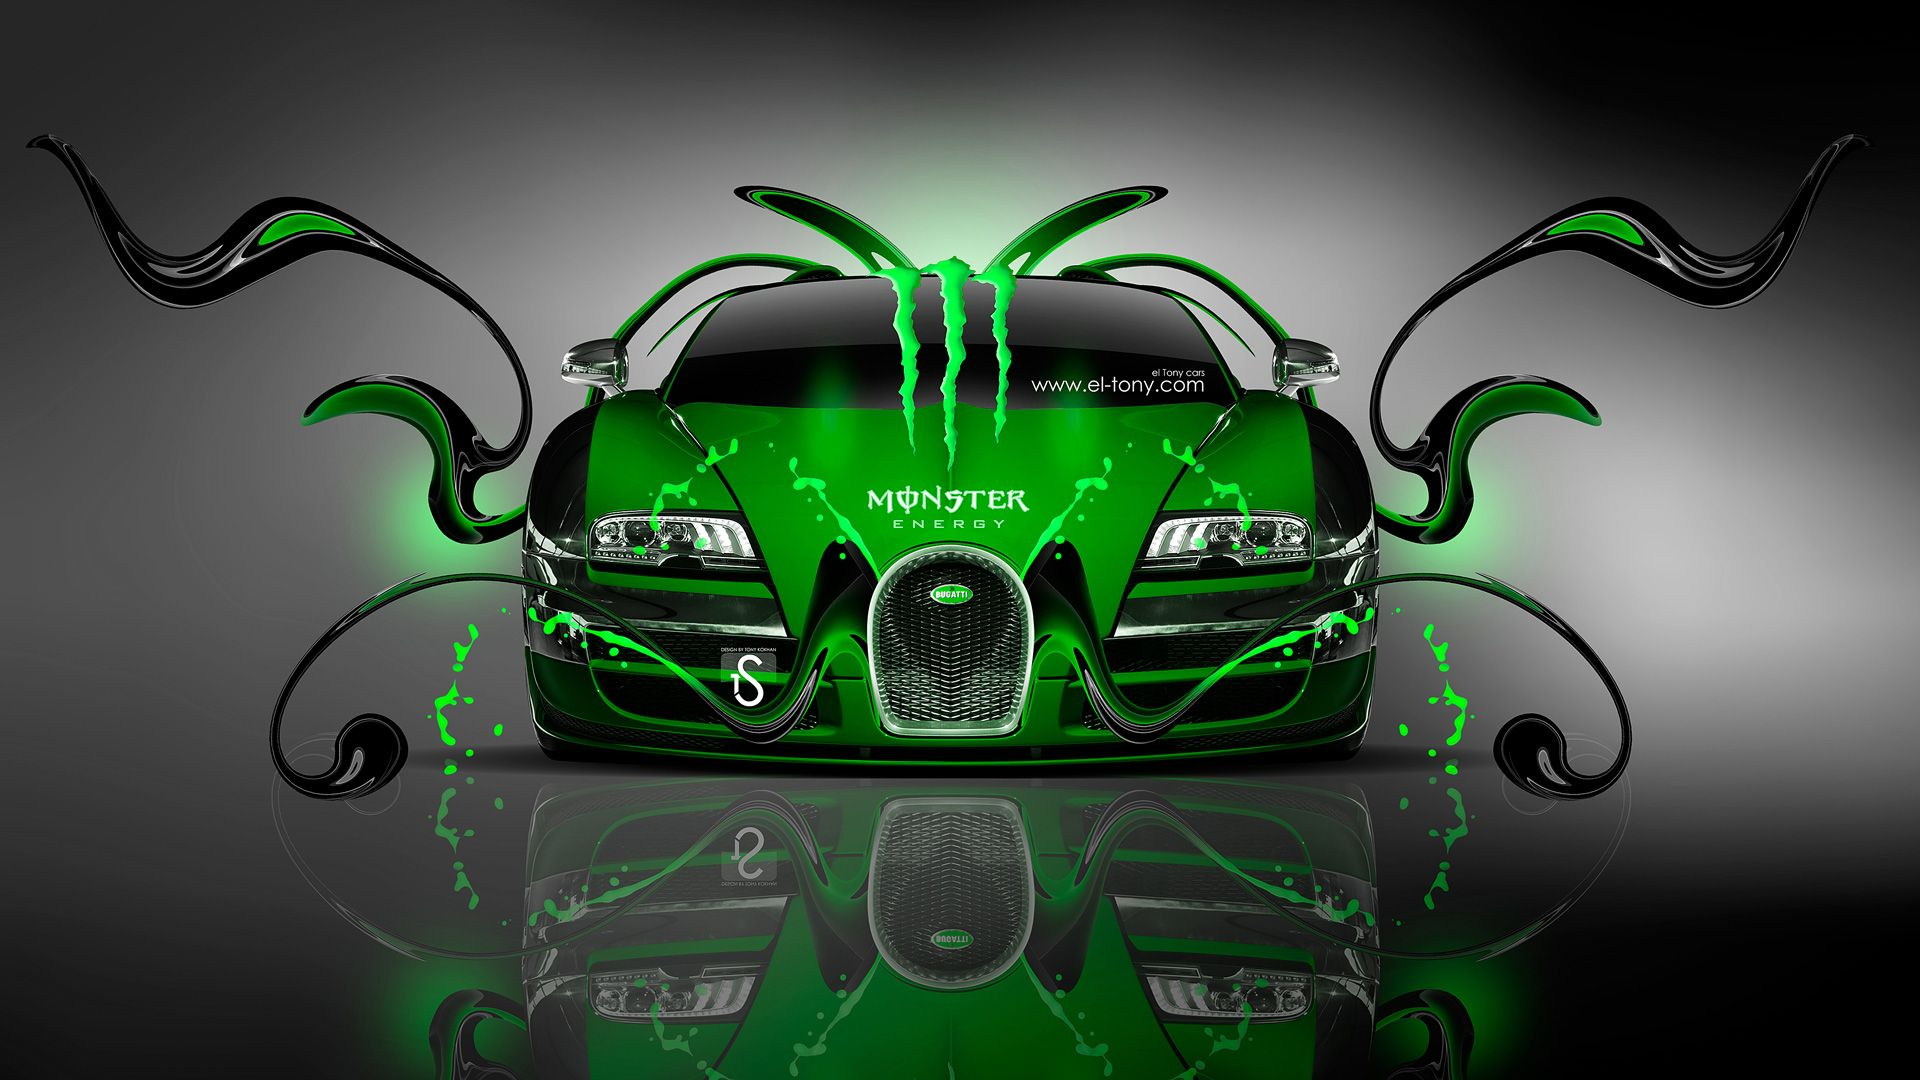 The Bugatti Veyron Was First Mentioned At The 1999 Tokyo Motor Show And The  Caru2026 Monster EnergyCar ...